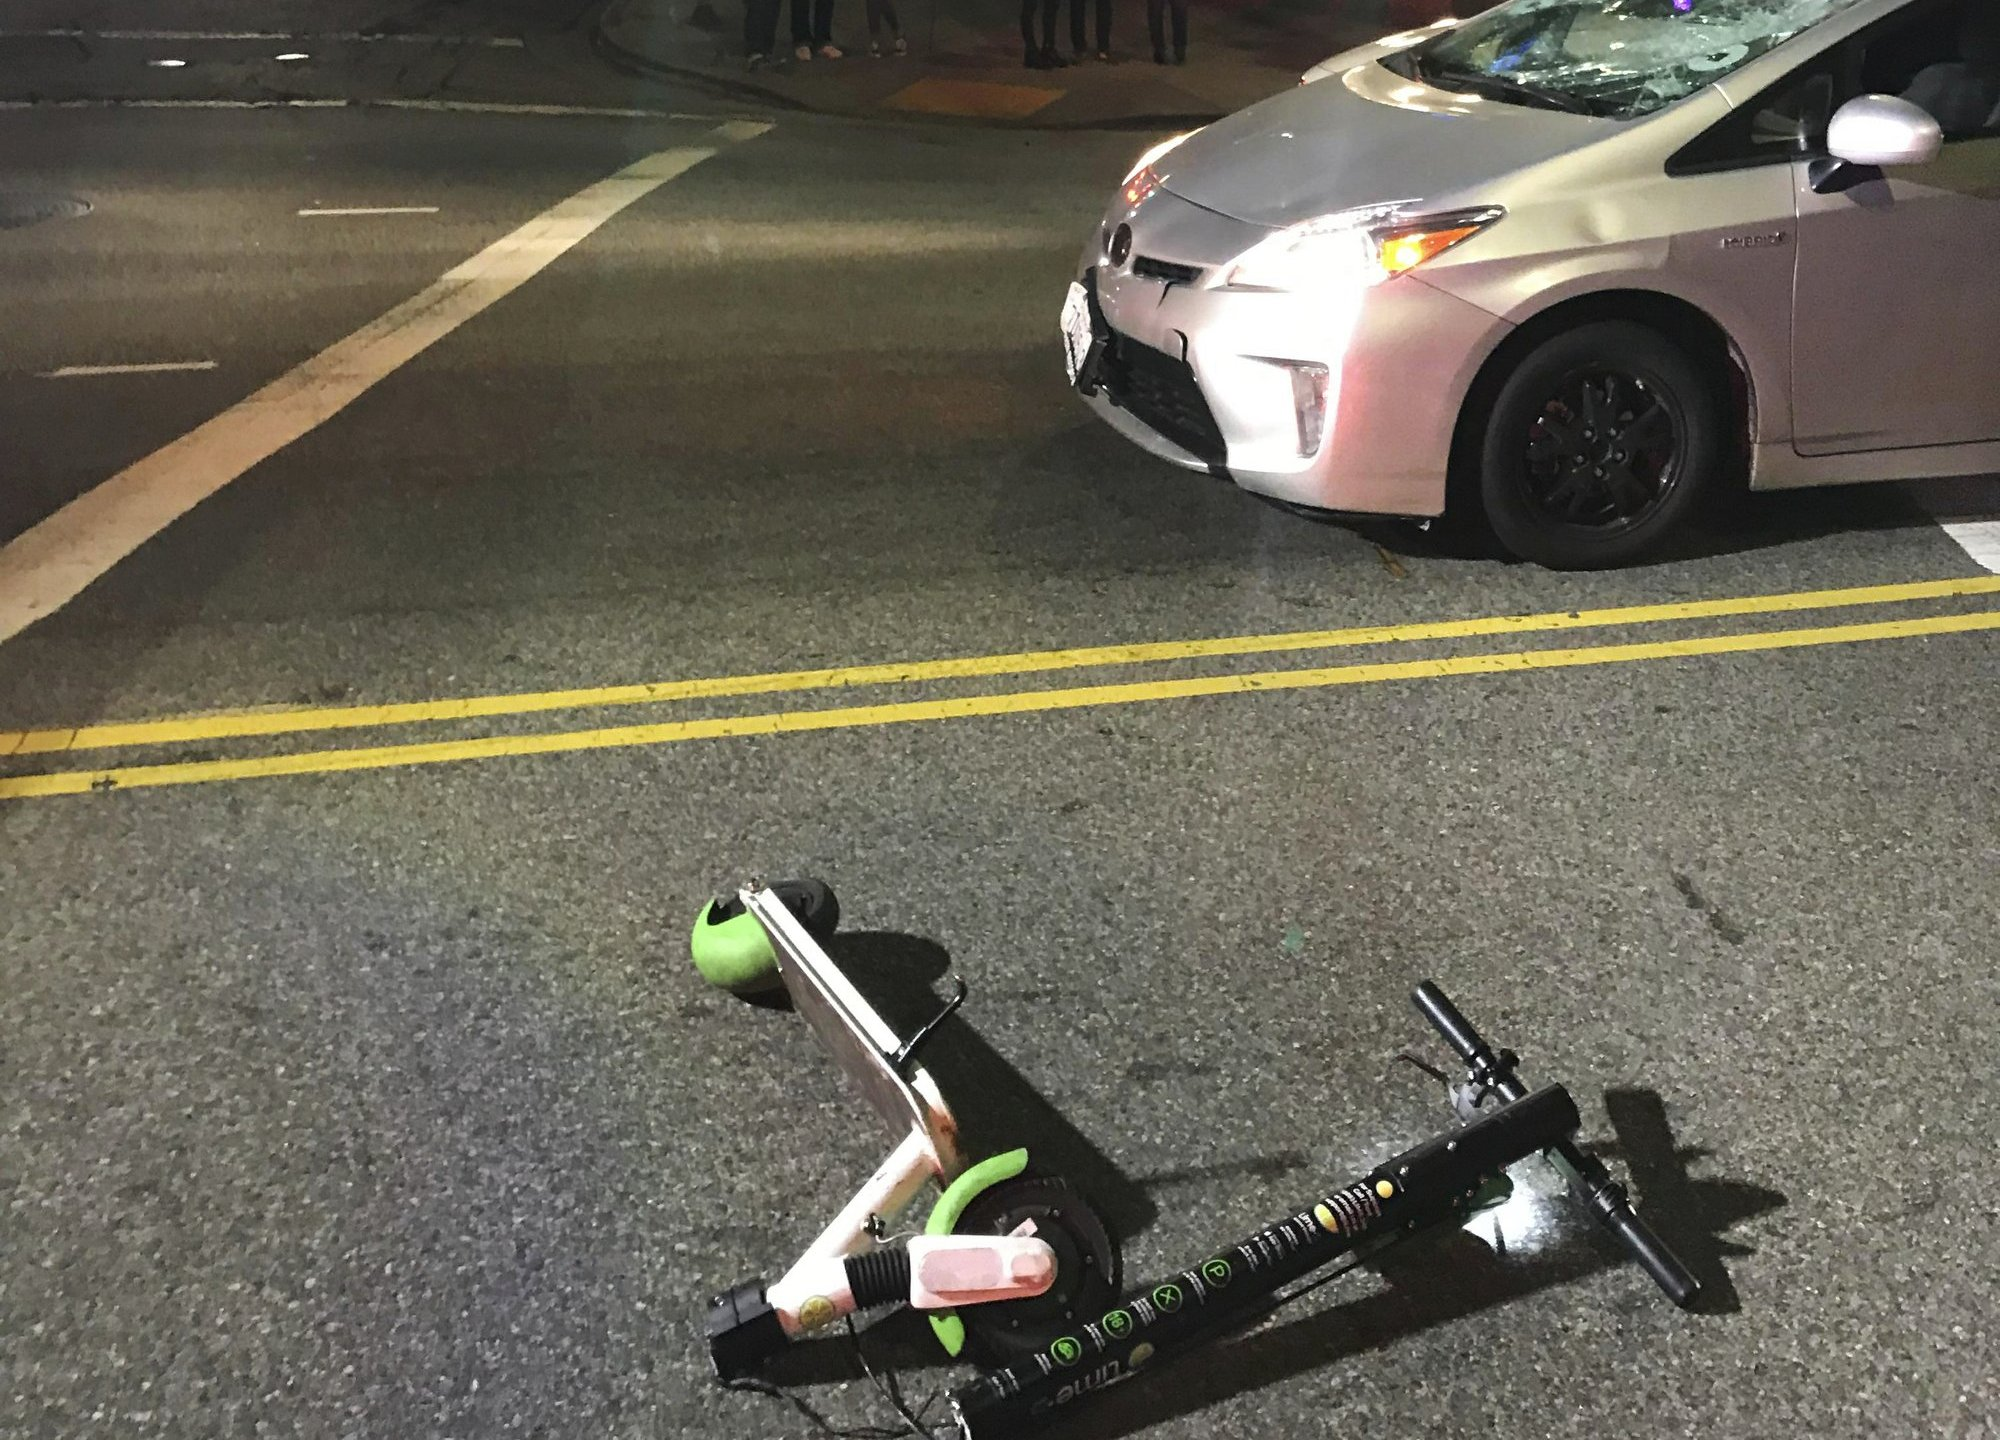 Boom in electric scooters leads to more injuries, fatalities_1559891270698.jpeg.jpg